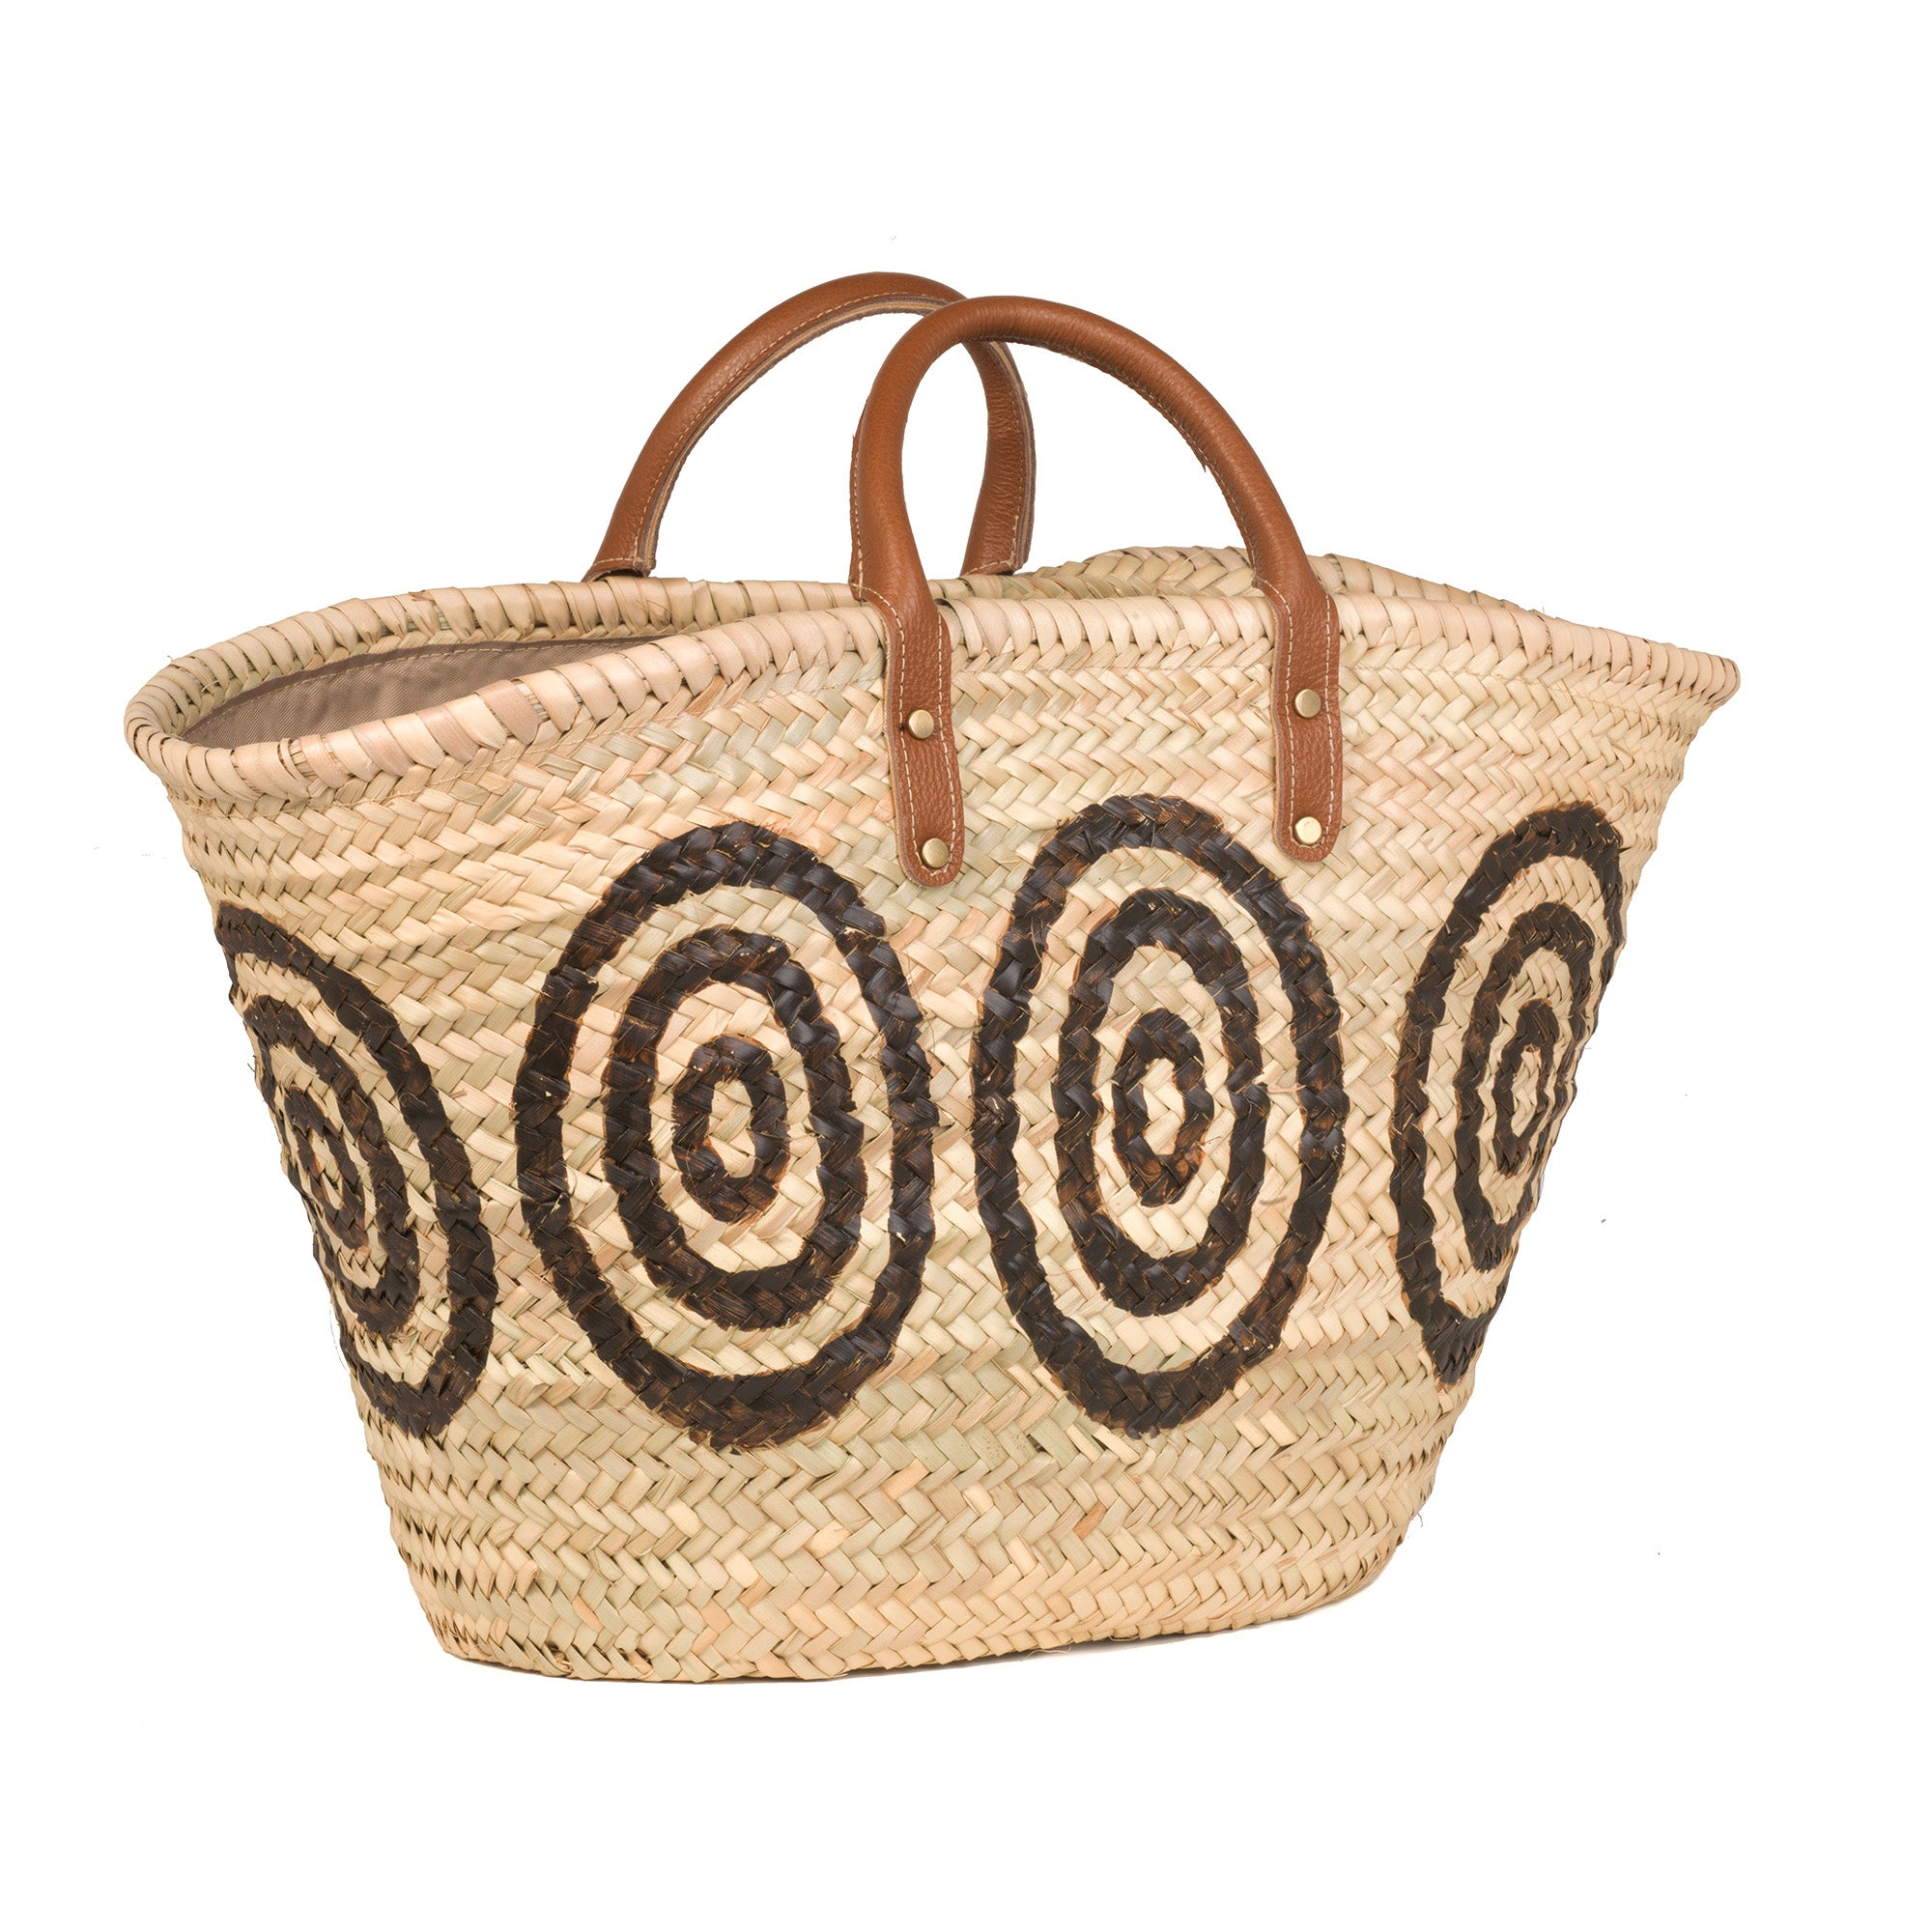 The Kyklos Basket with Leather